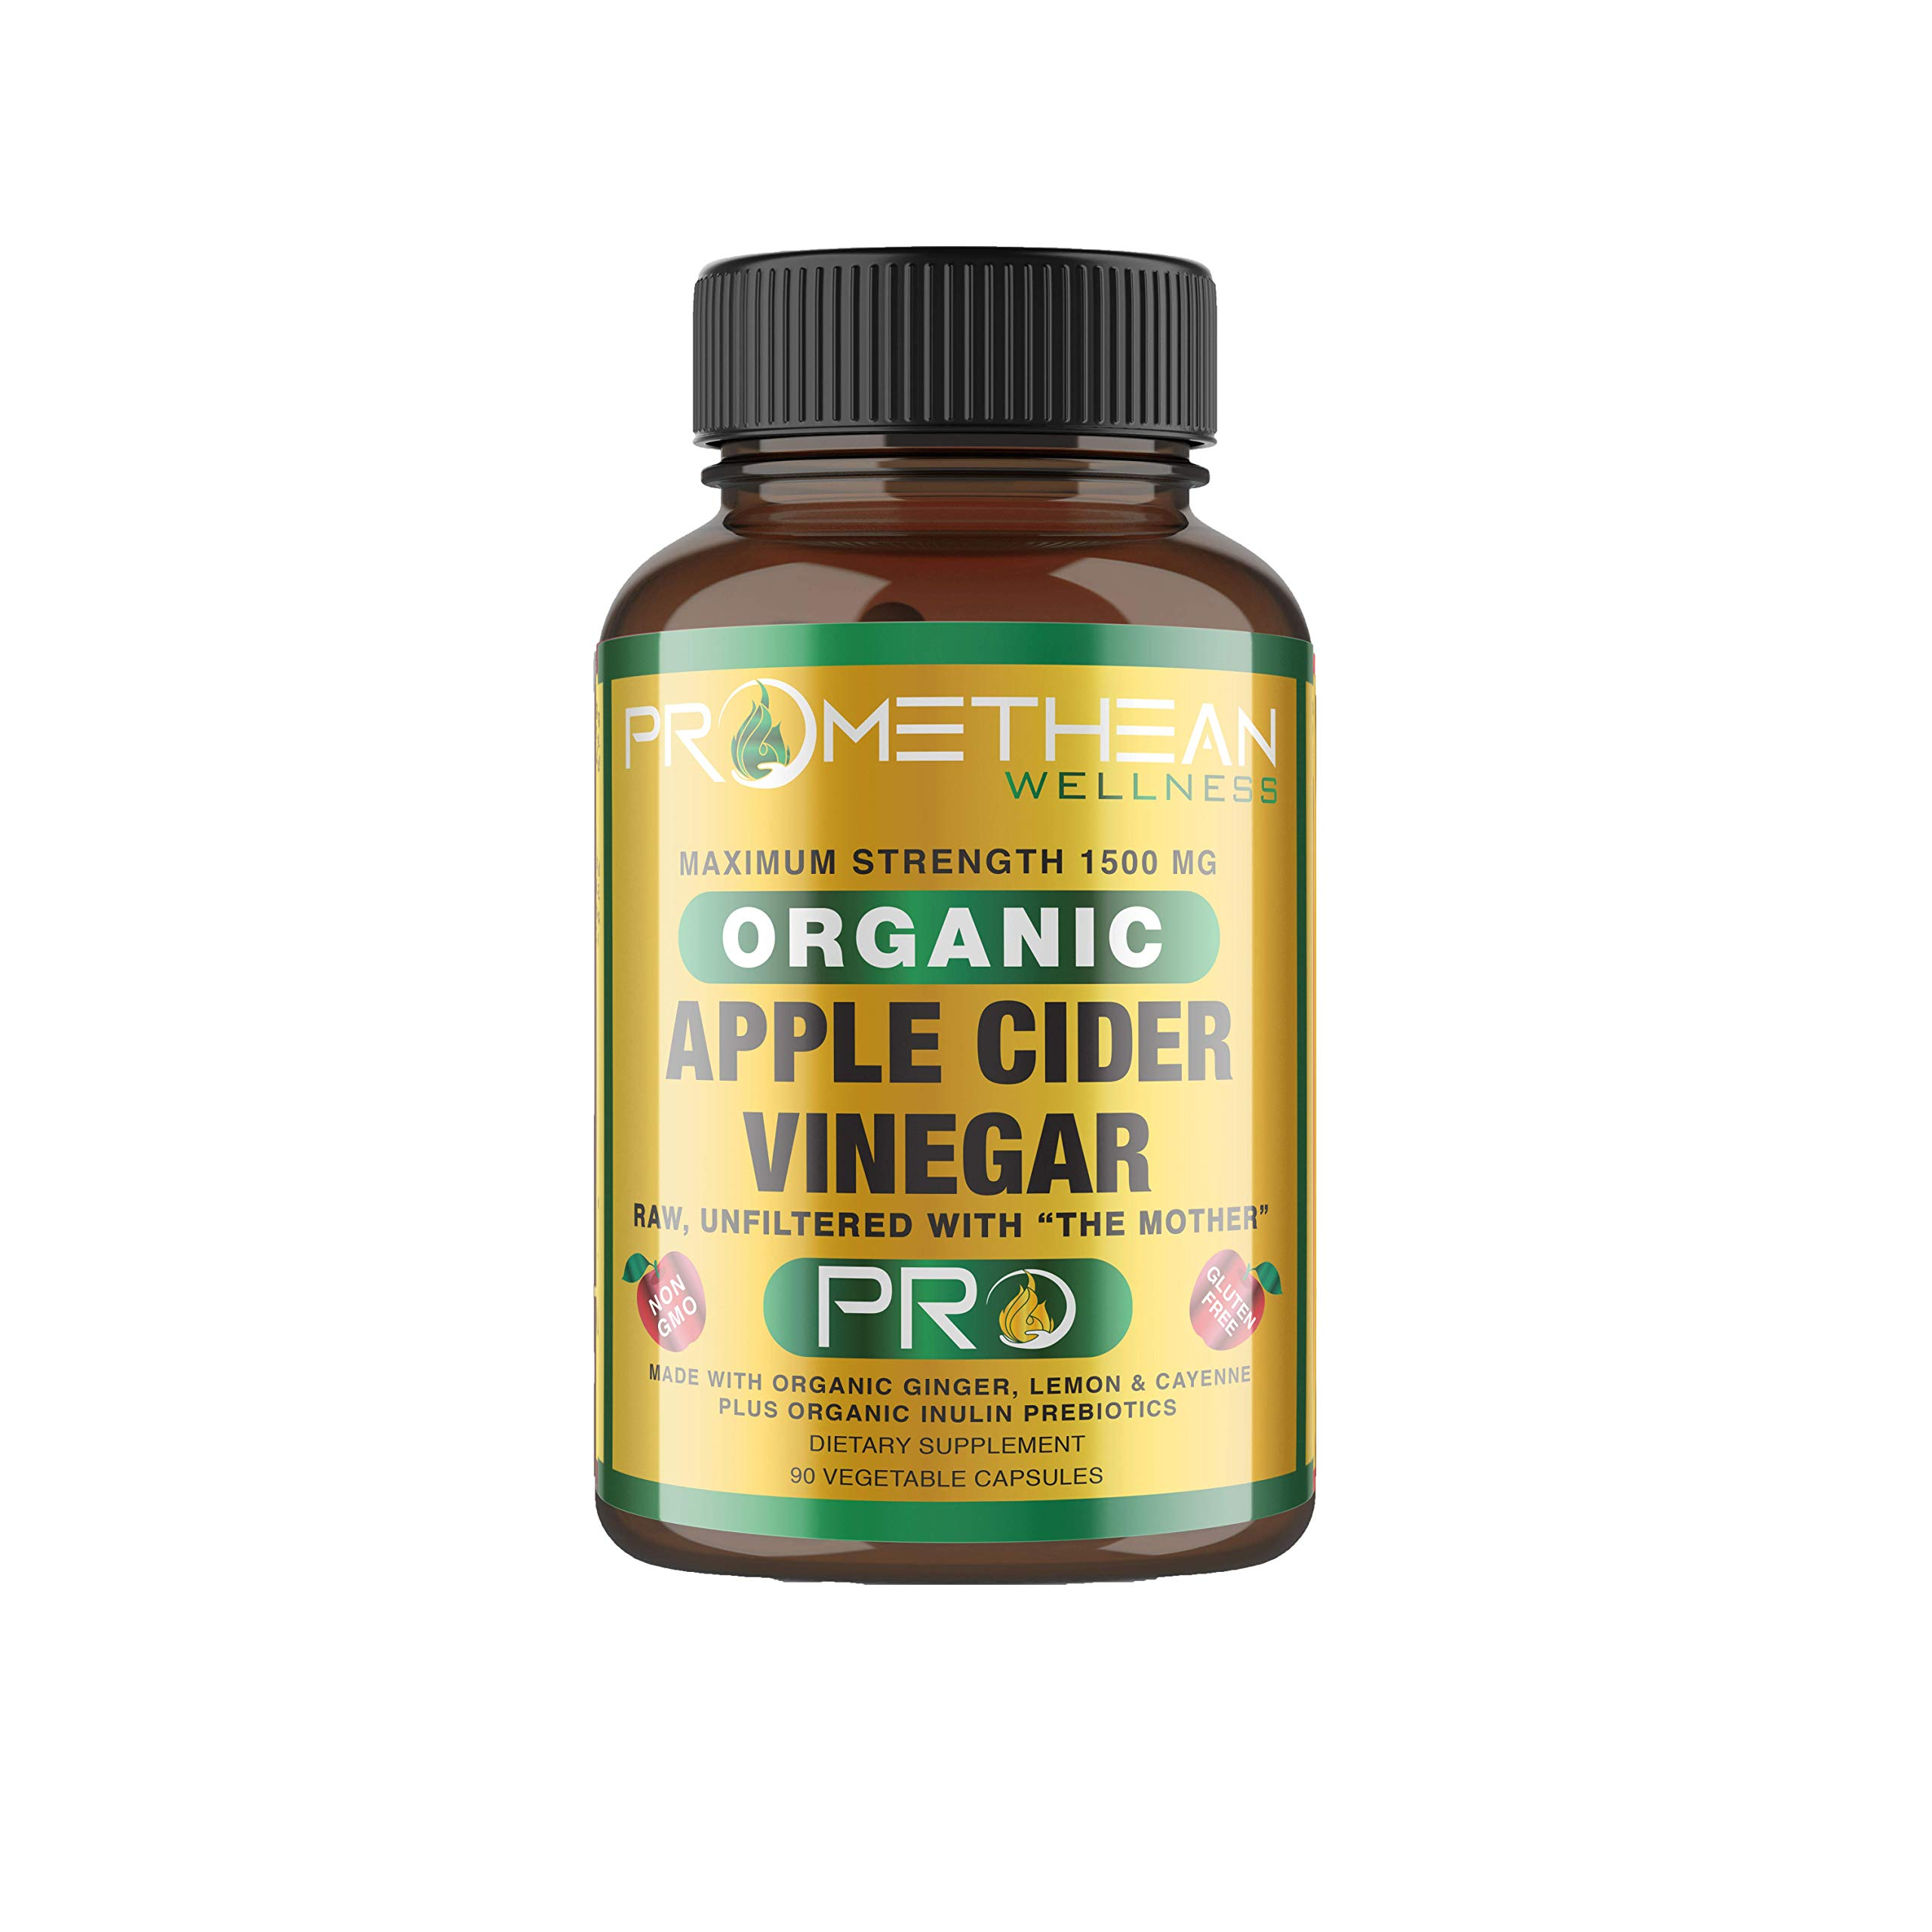 Organic Apple Cider Vinegar Capsules ACV Pro Diet Pills Detox Cleanse for Weight Loss Raw Unfiltered with Mother Powder Supplements Tablets Cayenne Ginger Inulin Fiber Prebiotics Lemon 1500mg 90ct by Promethean Wellness LLC